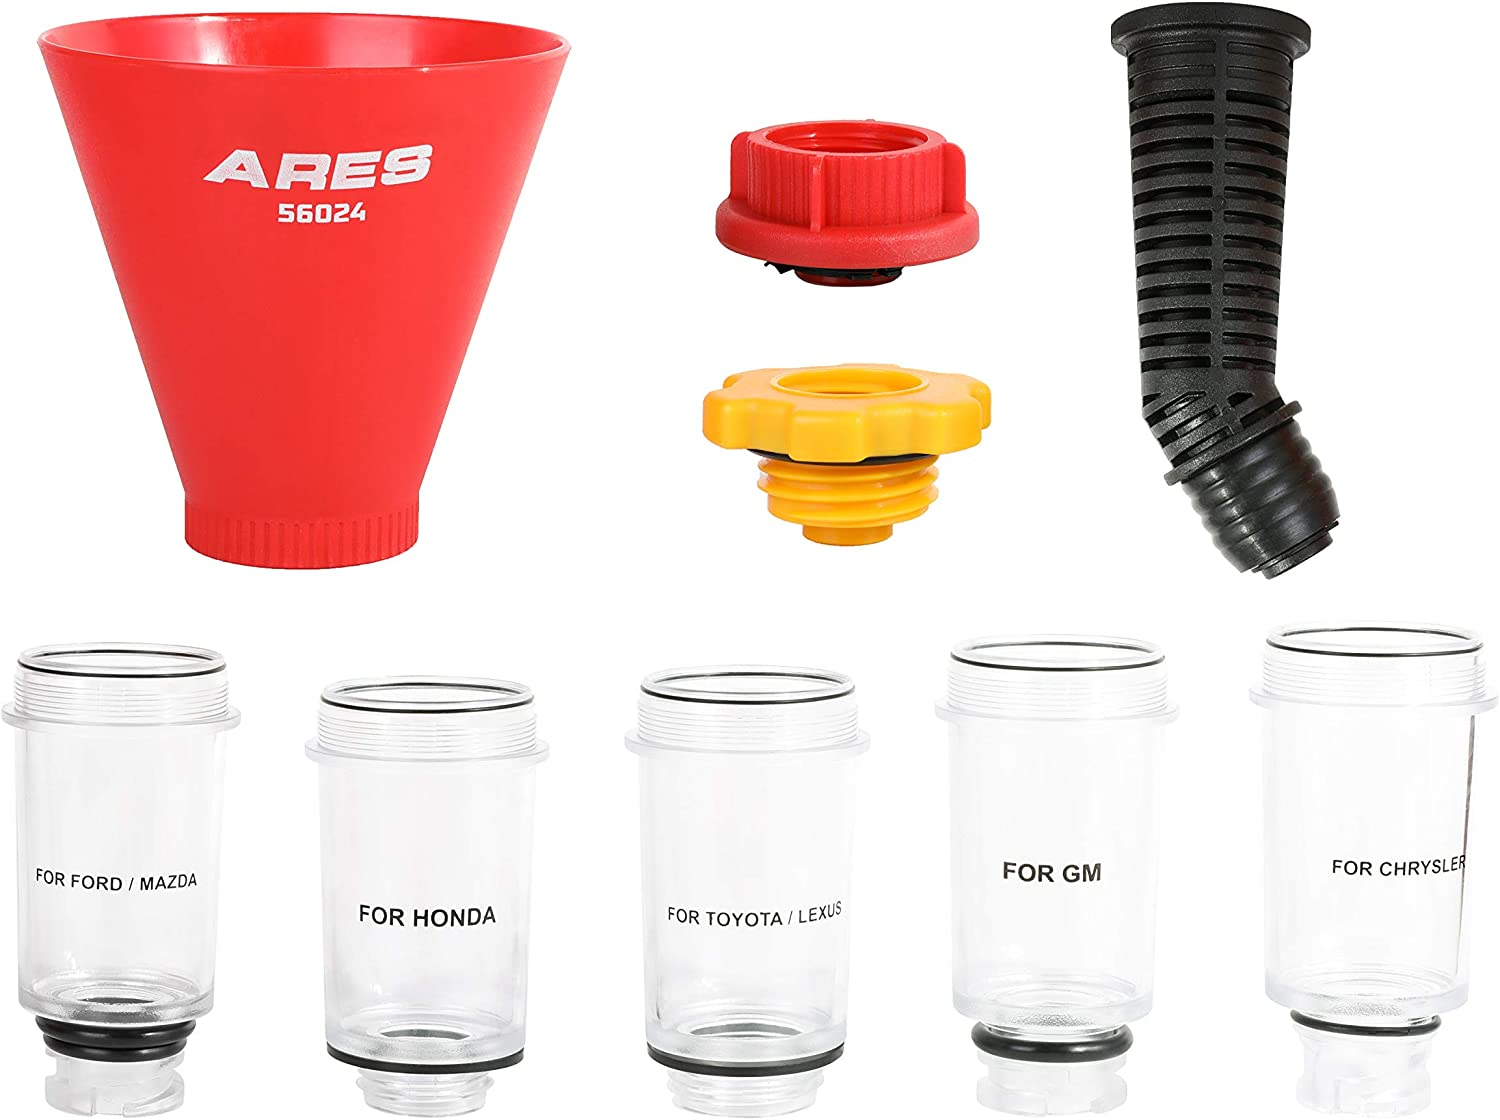 Easy to Use 1-Person Design Fits Most Popular Vehicles in North America Spill-Free Oil Filling ARES 56024-9-Piece Oil Funnel Kit